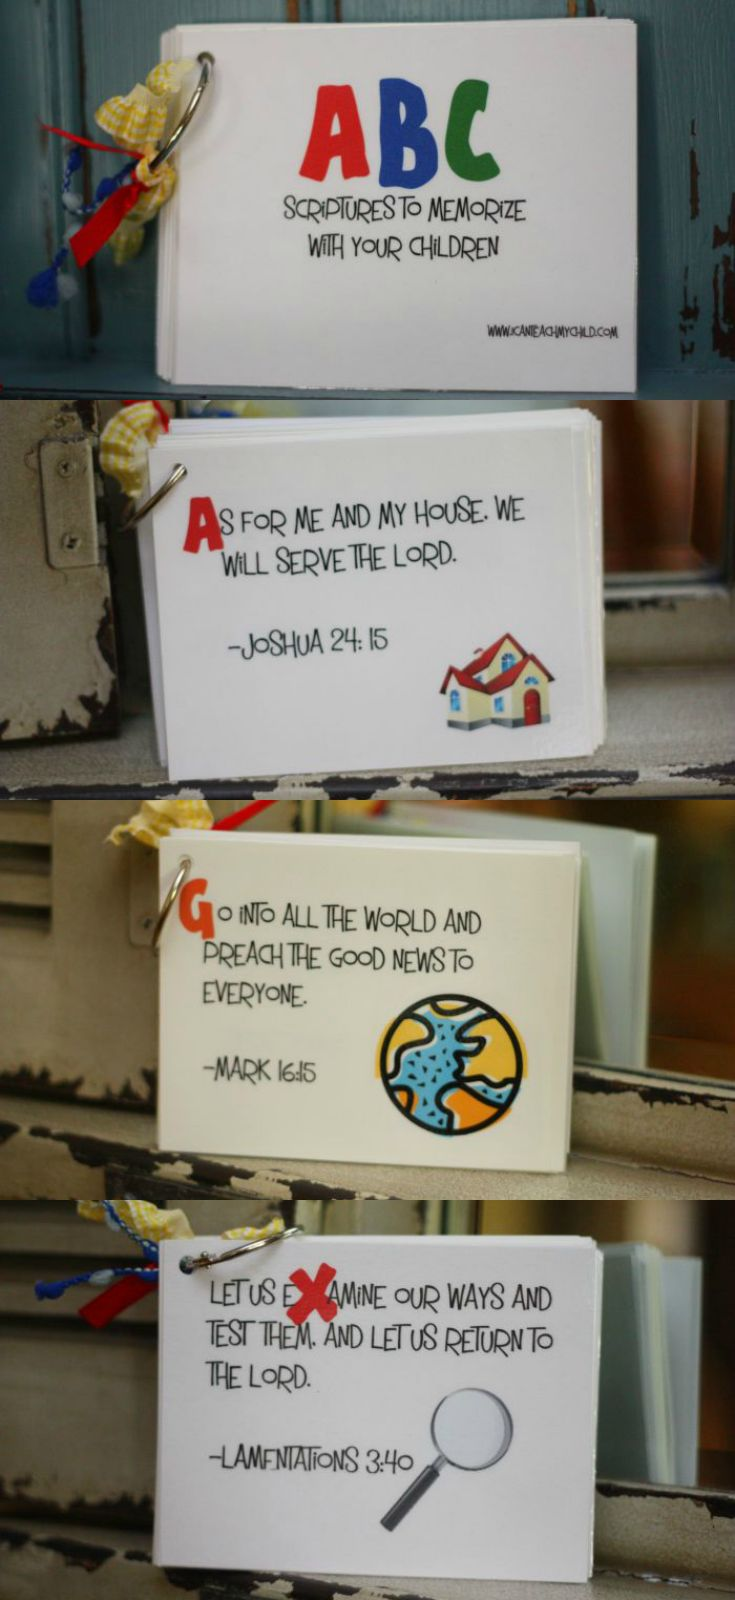 ABC Printable Scripture Cards:  Free download with 1 easy-to-memorize scripture for every letter of the alphabet.  Such a great resource for families!